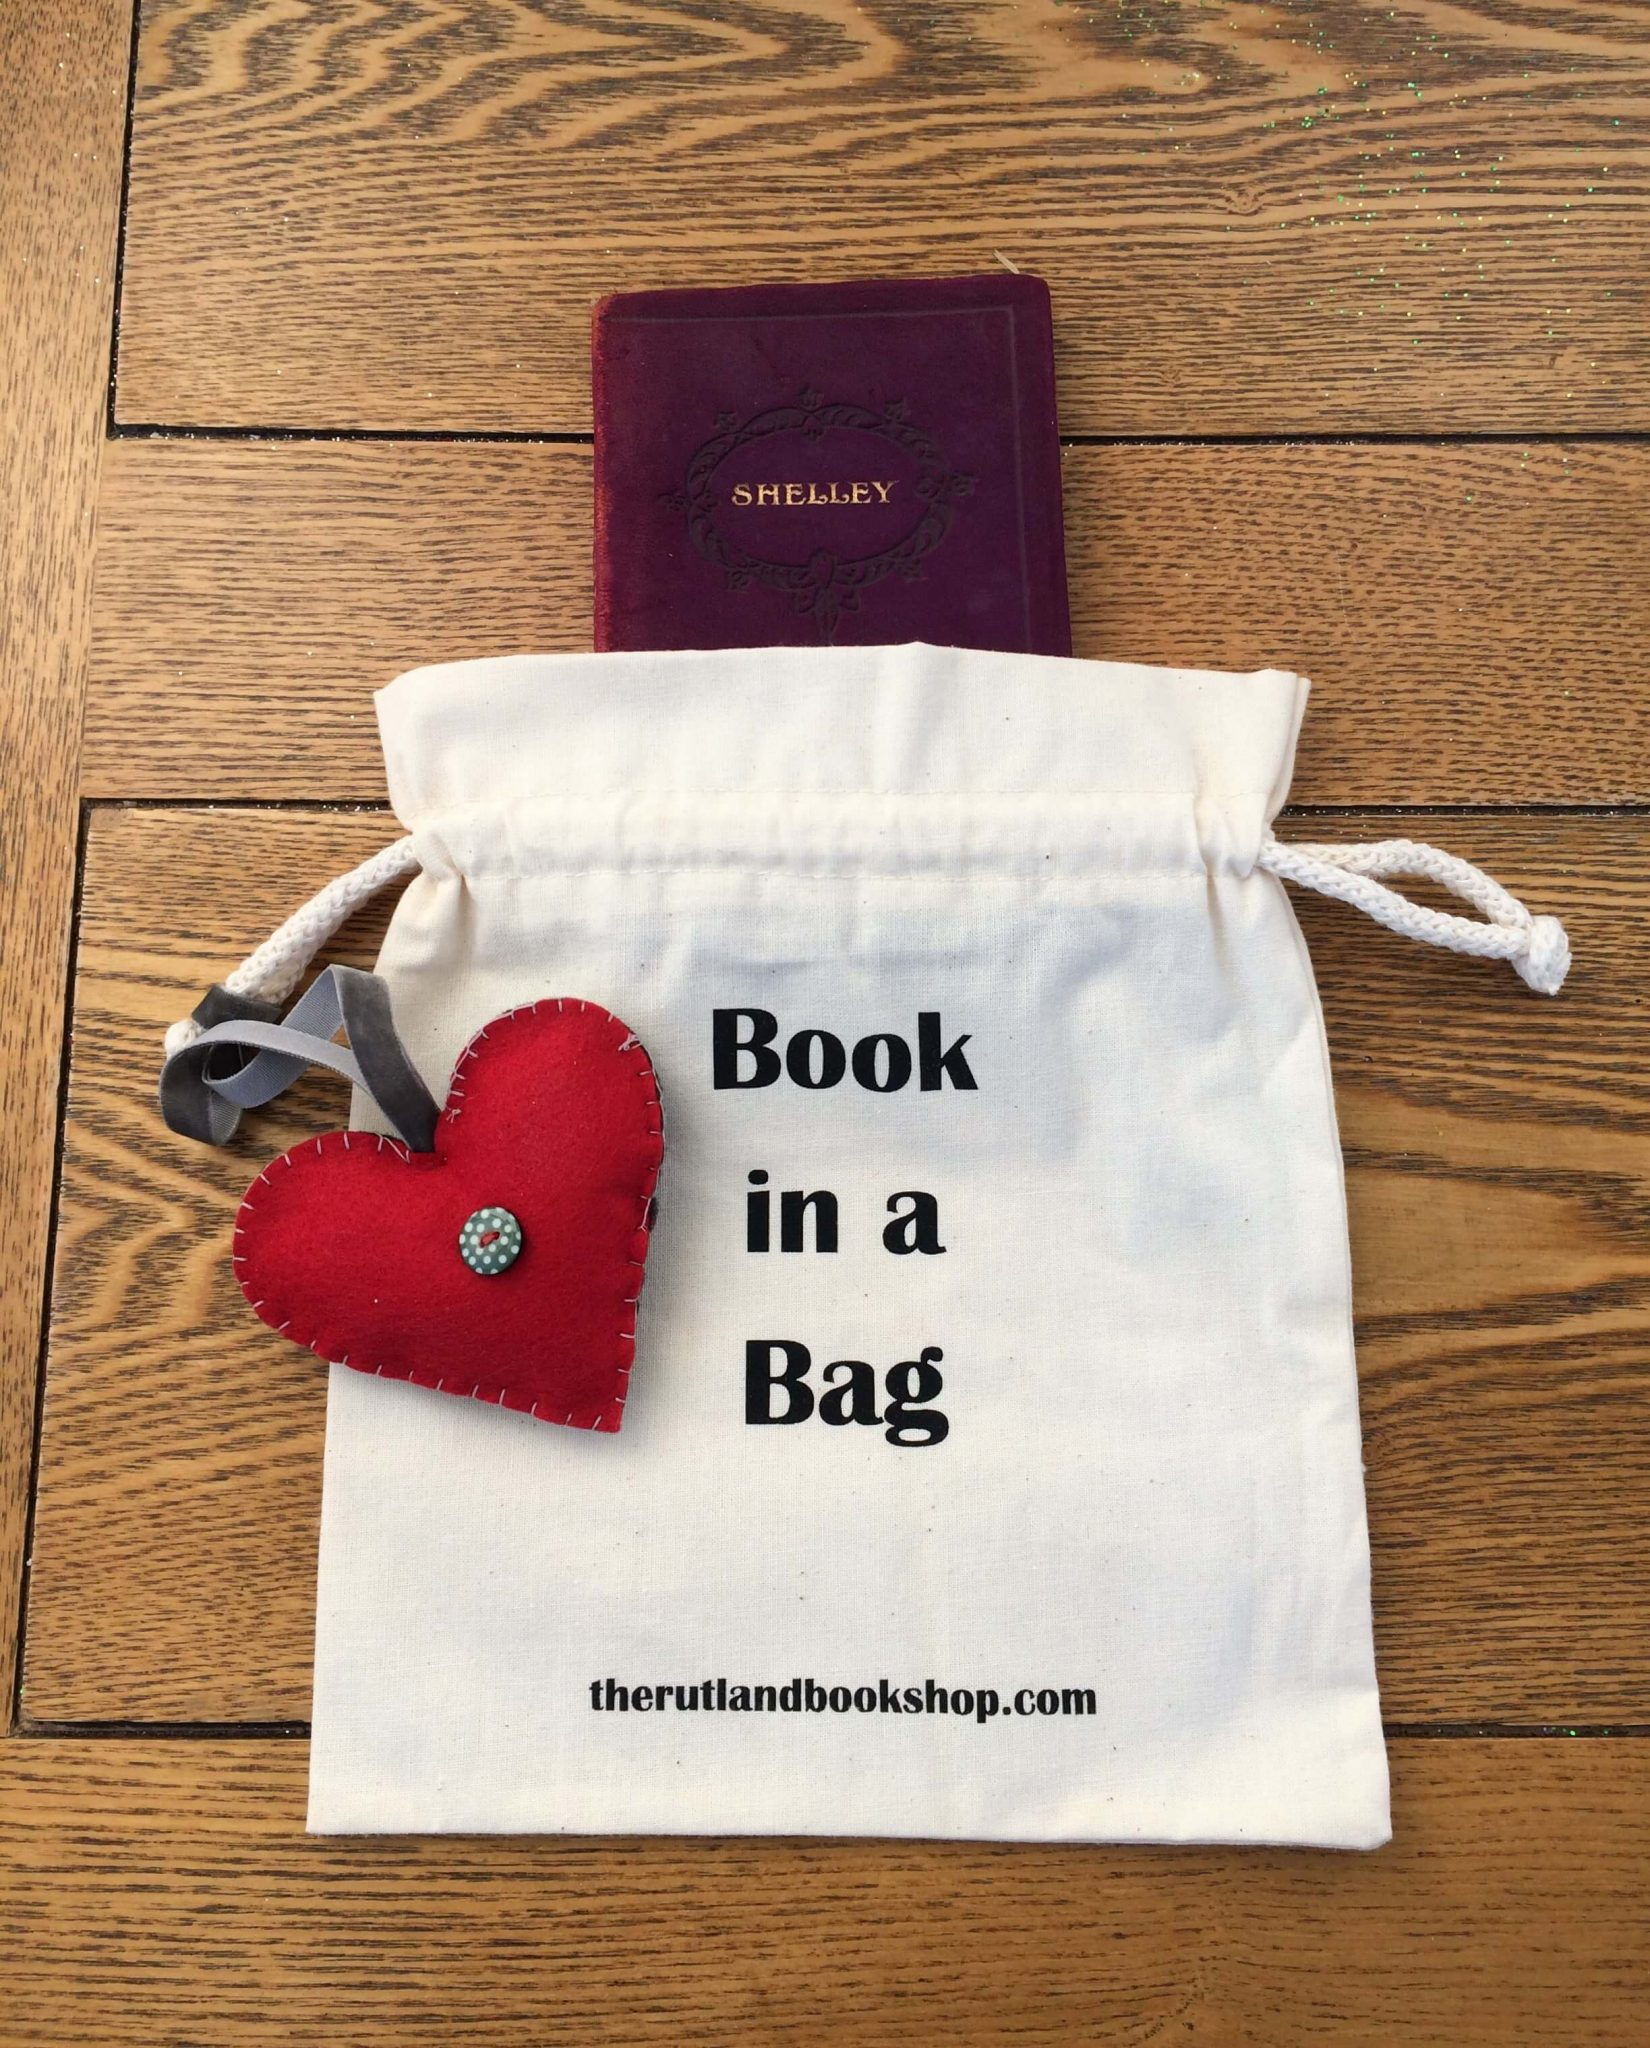 Shelley: Book In A Bag